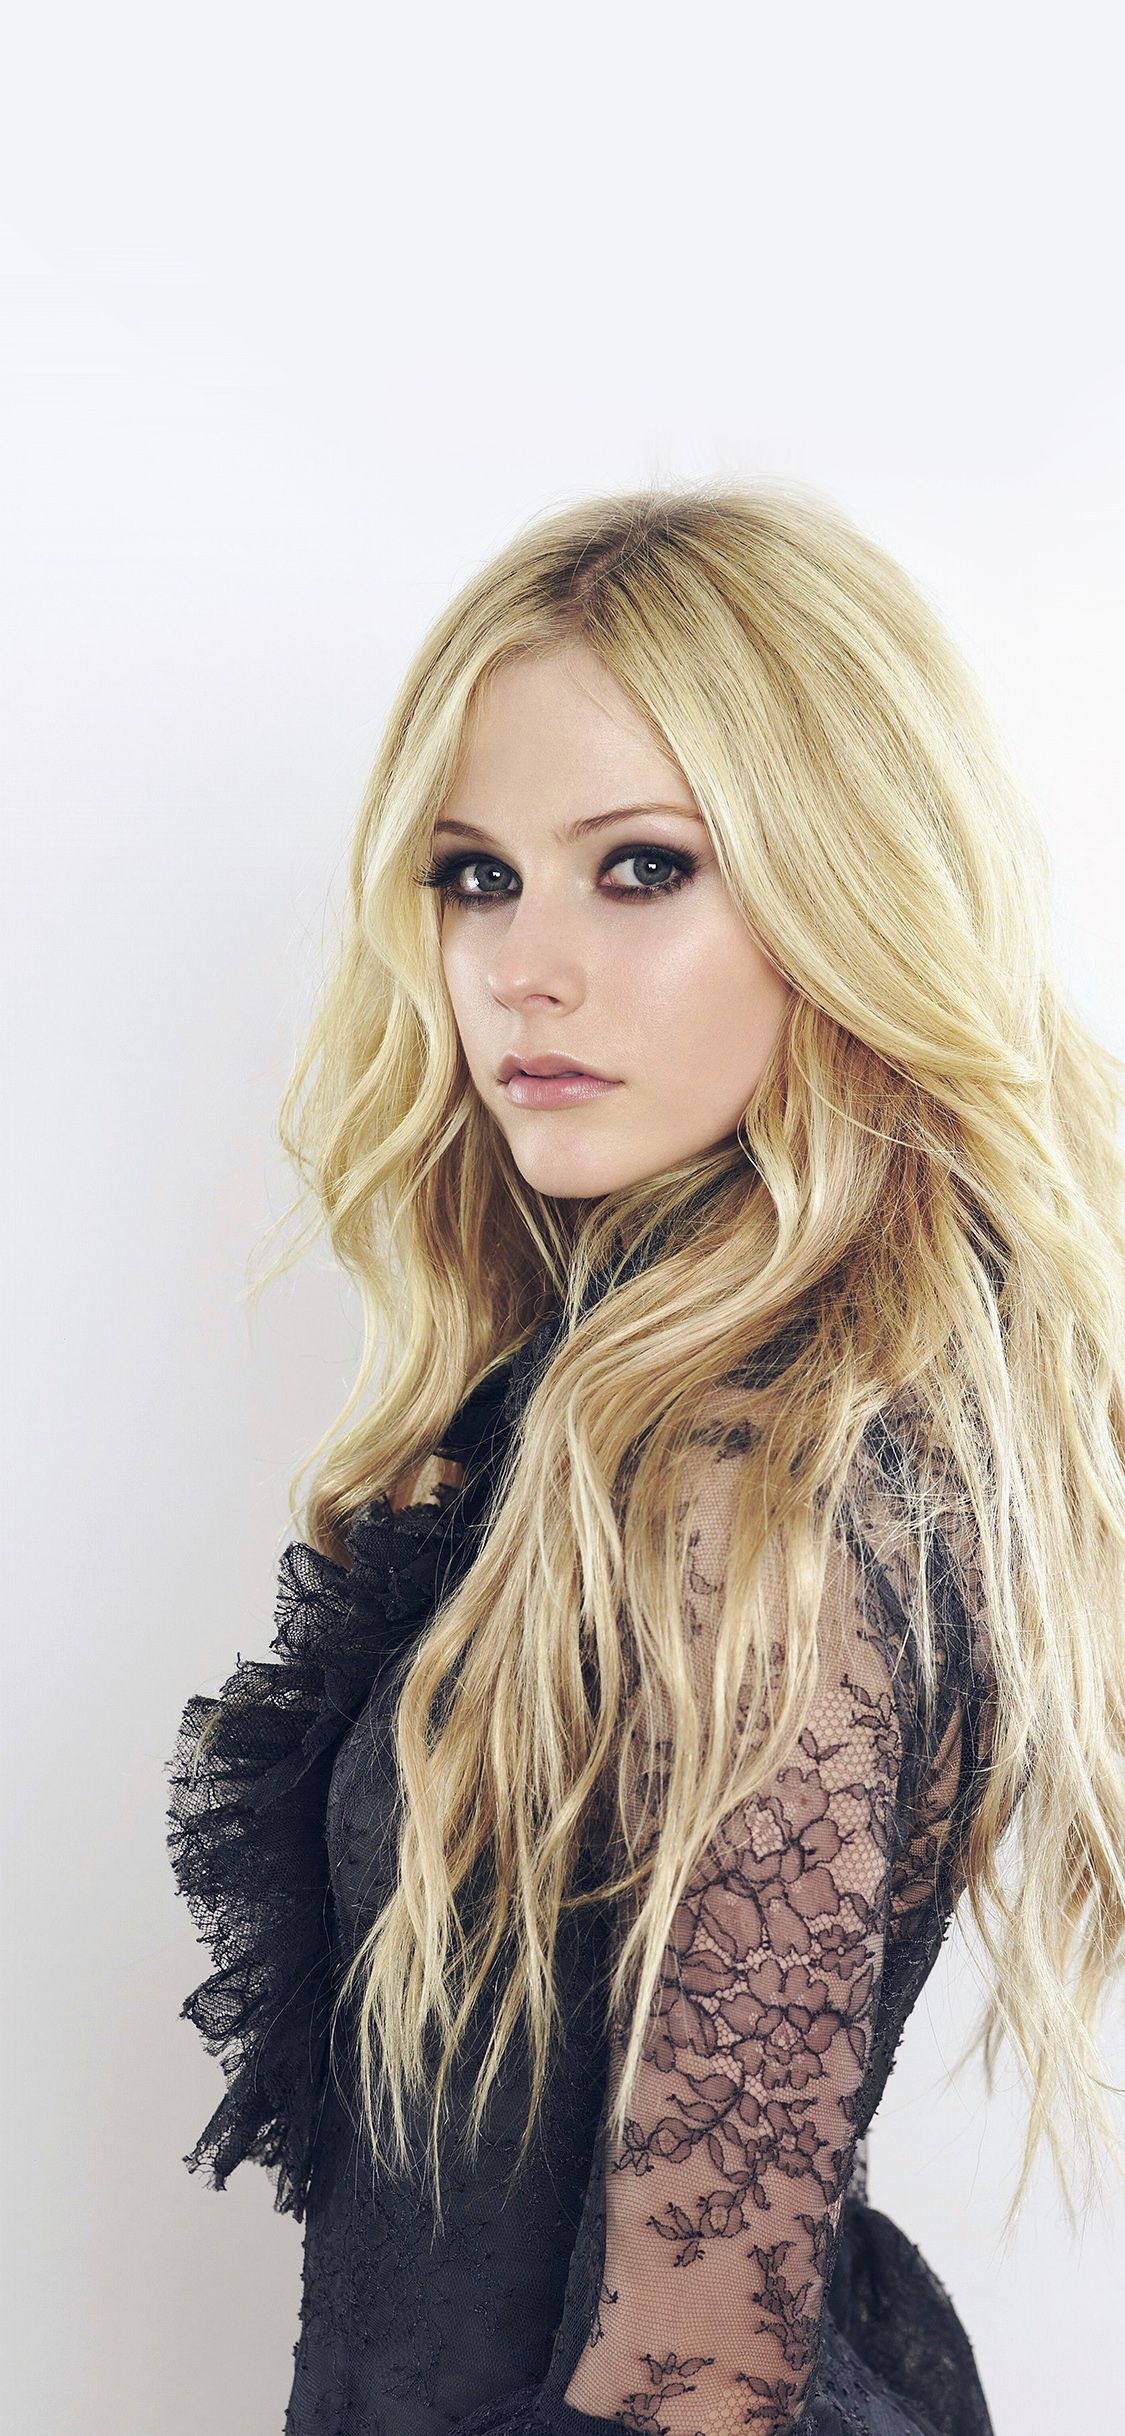 iphonepapers - hg34-avril-lavigne-canadian-singer-cute-music